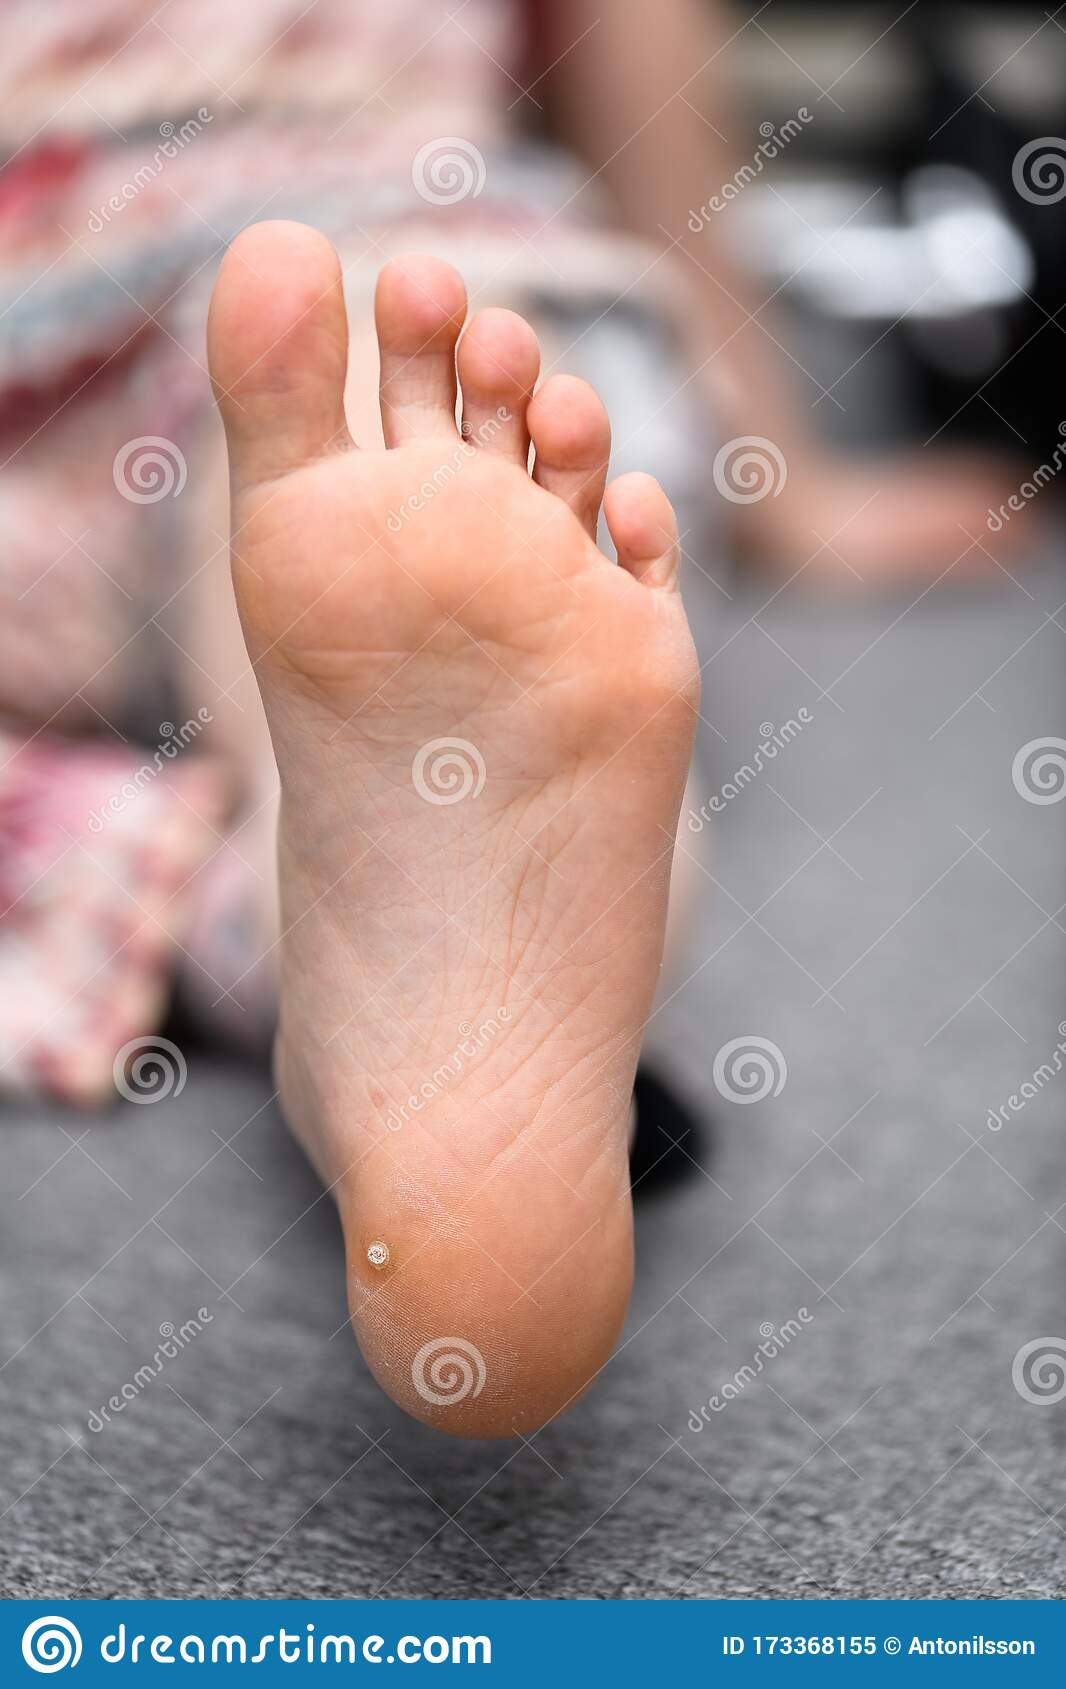 wart toddler foot